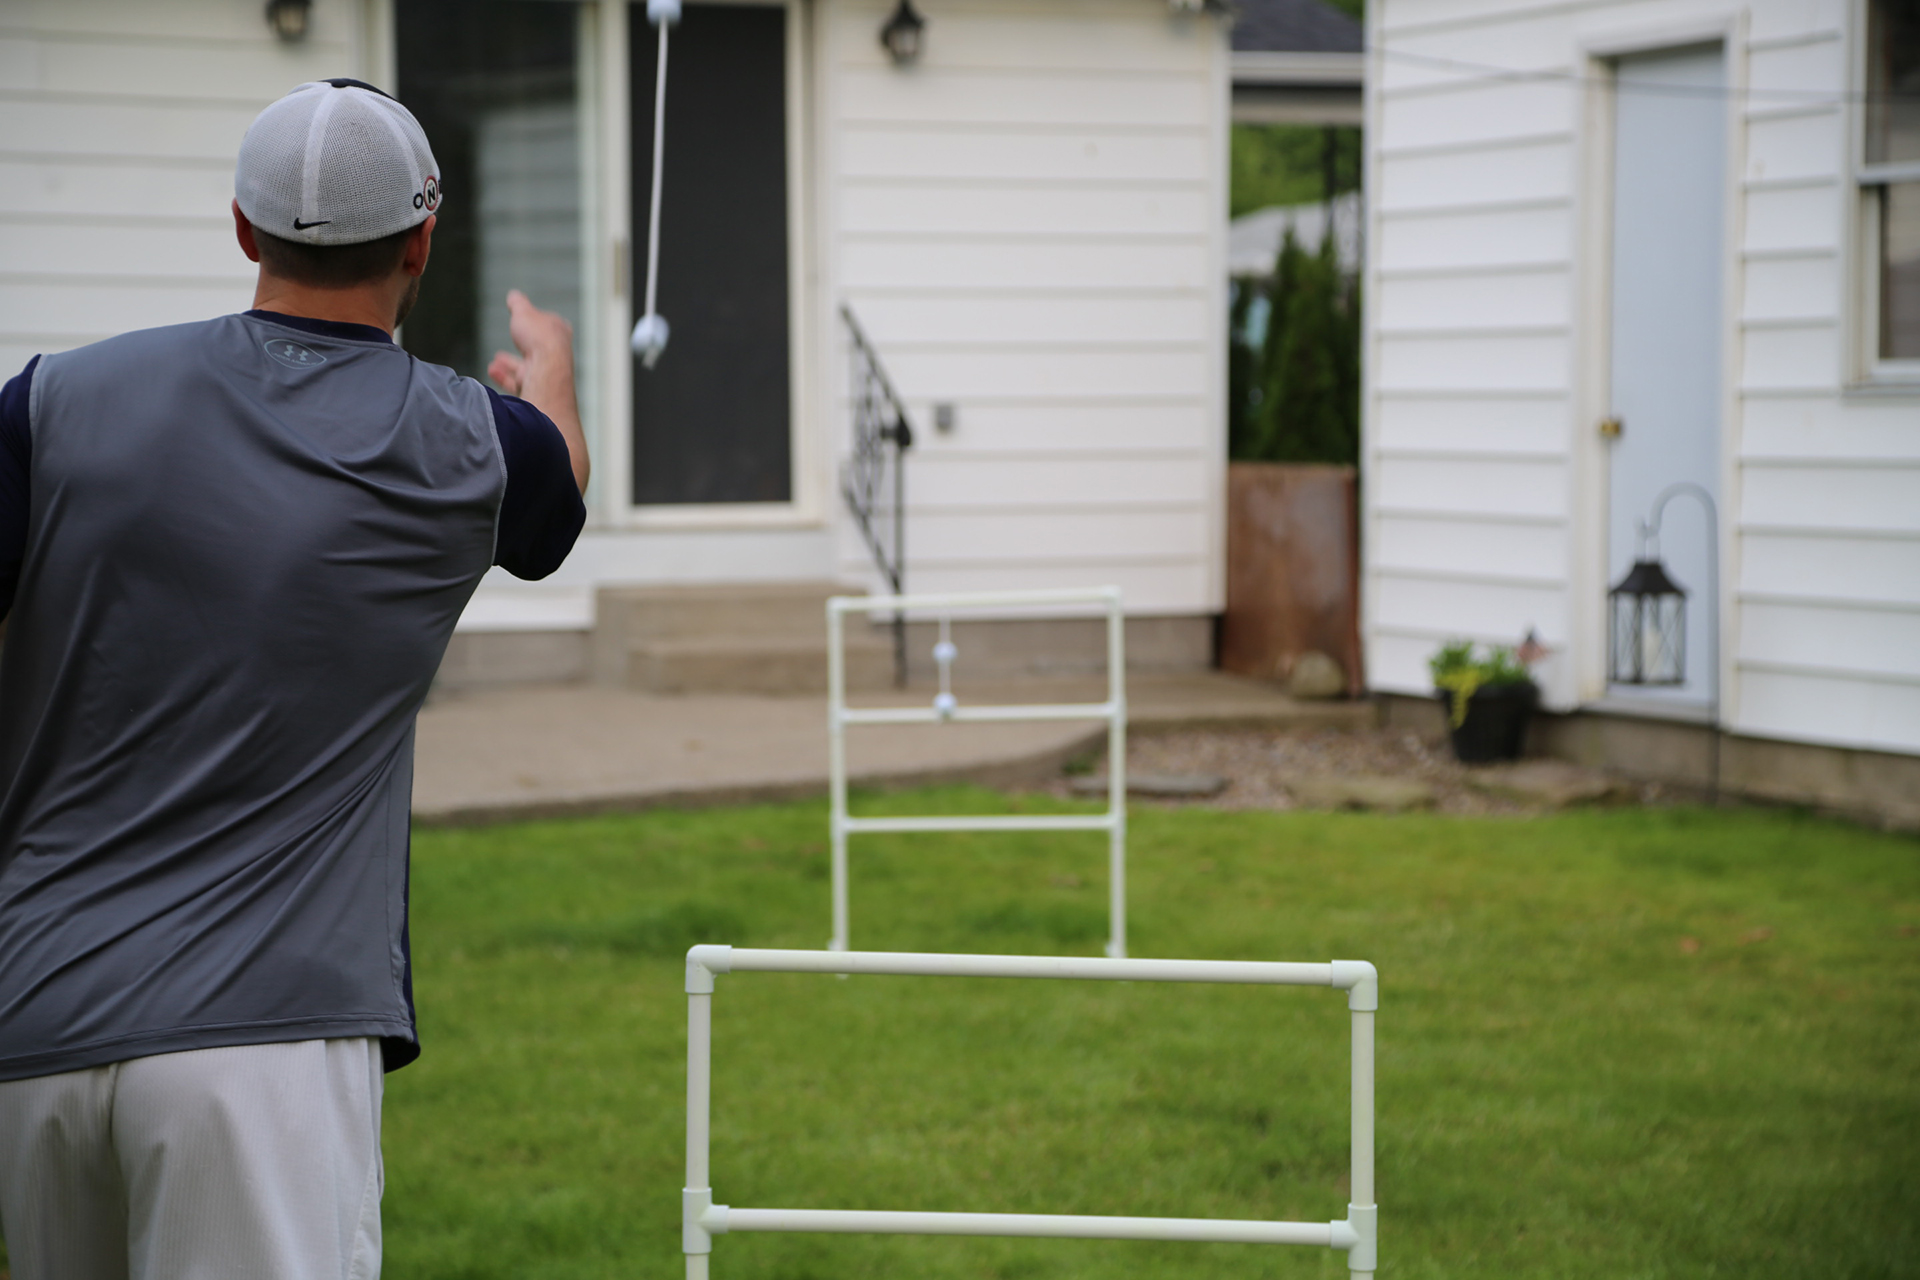 bring on the summer fun with this ladder golf diy life storage blog